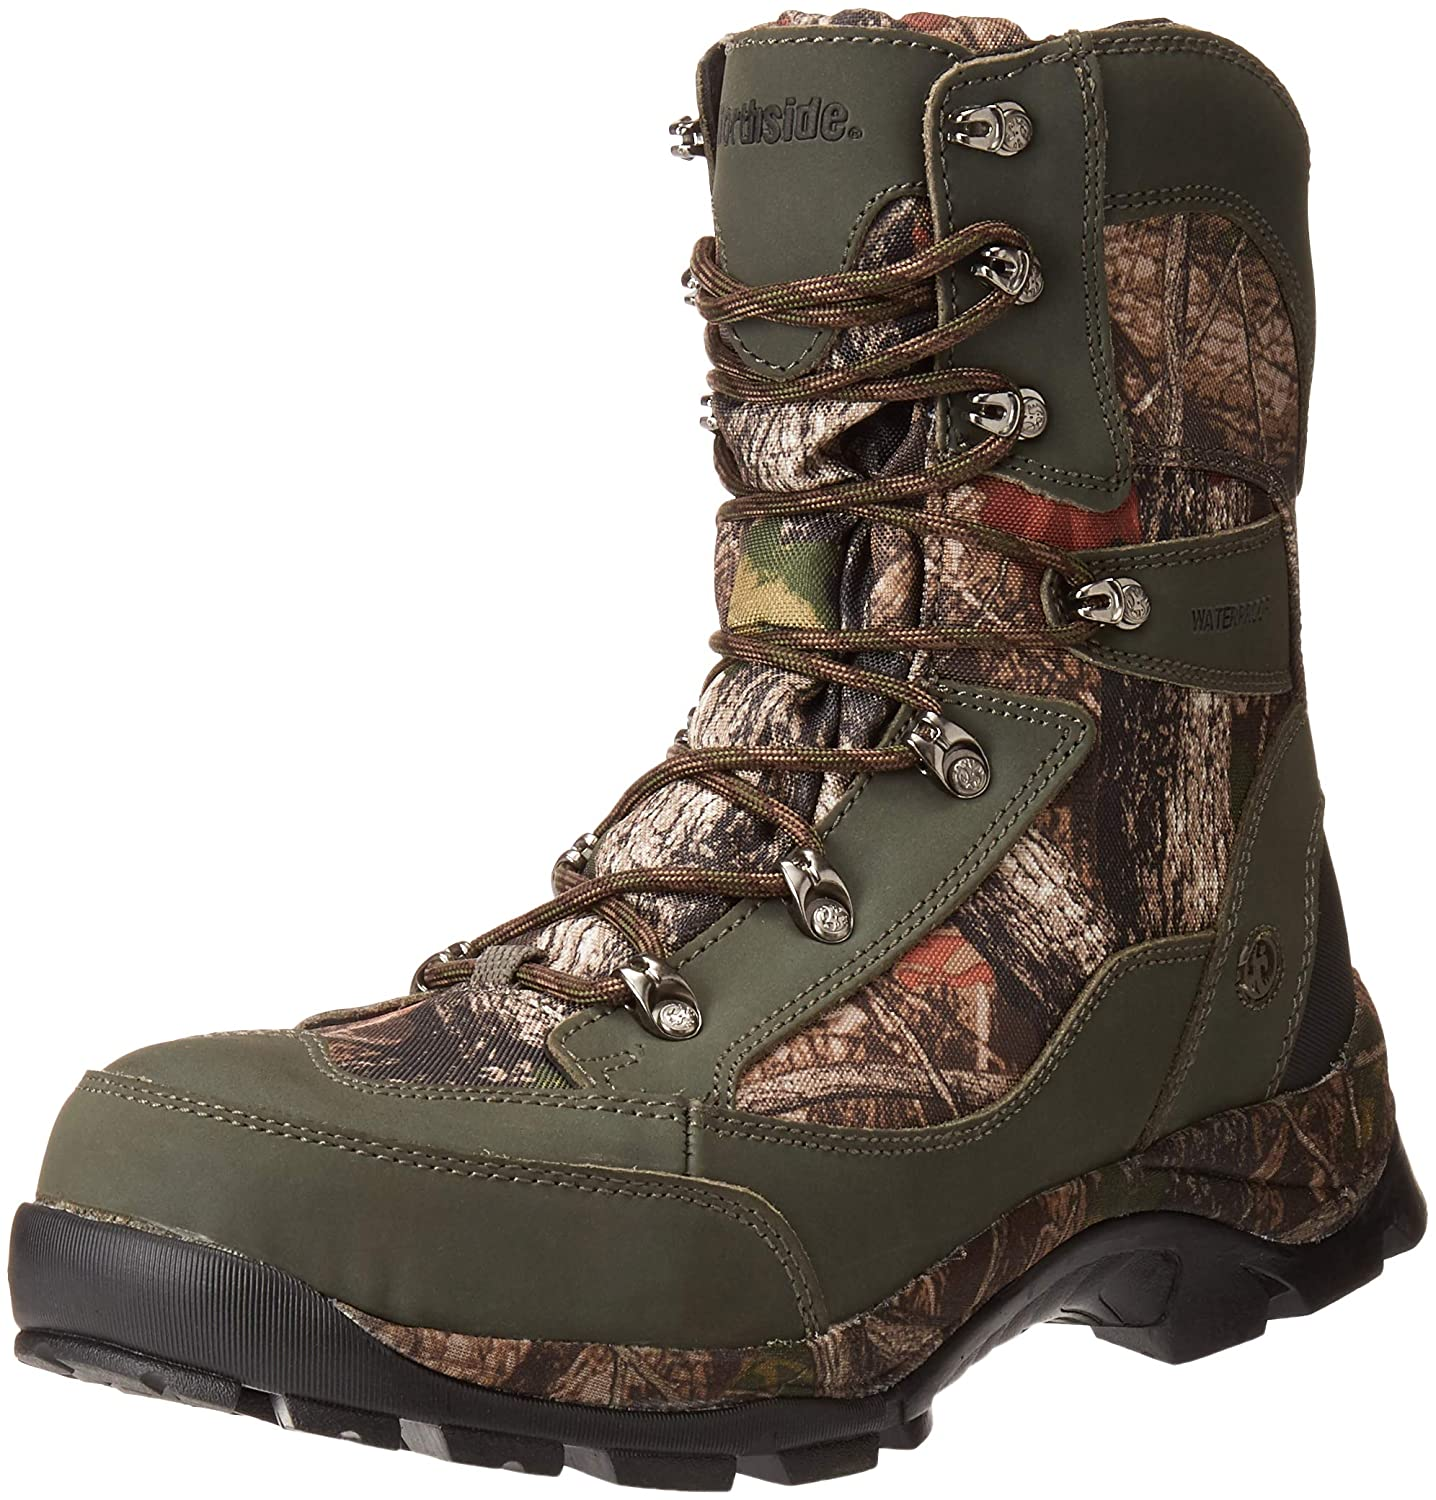 Northside Men's Buckman Hunting Shoes Triple T Trading BUCKMAN-M